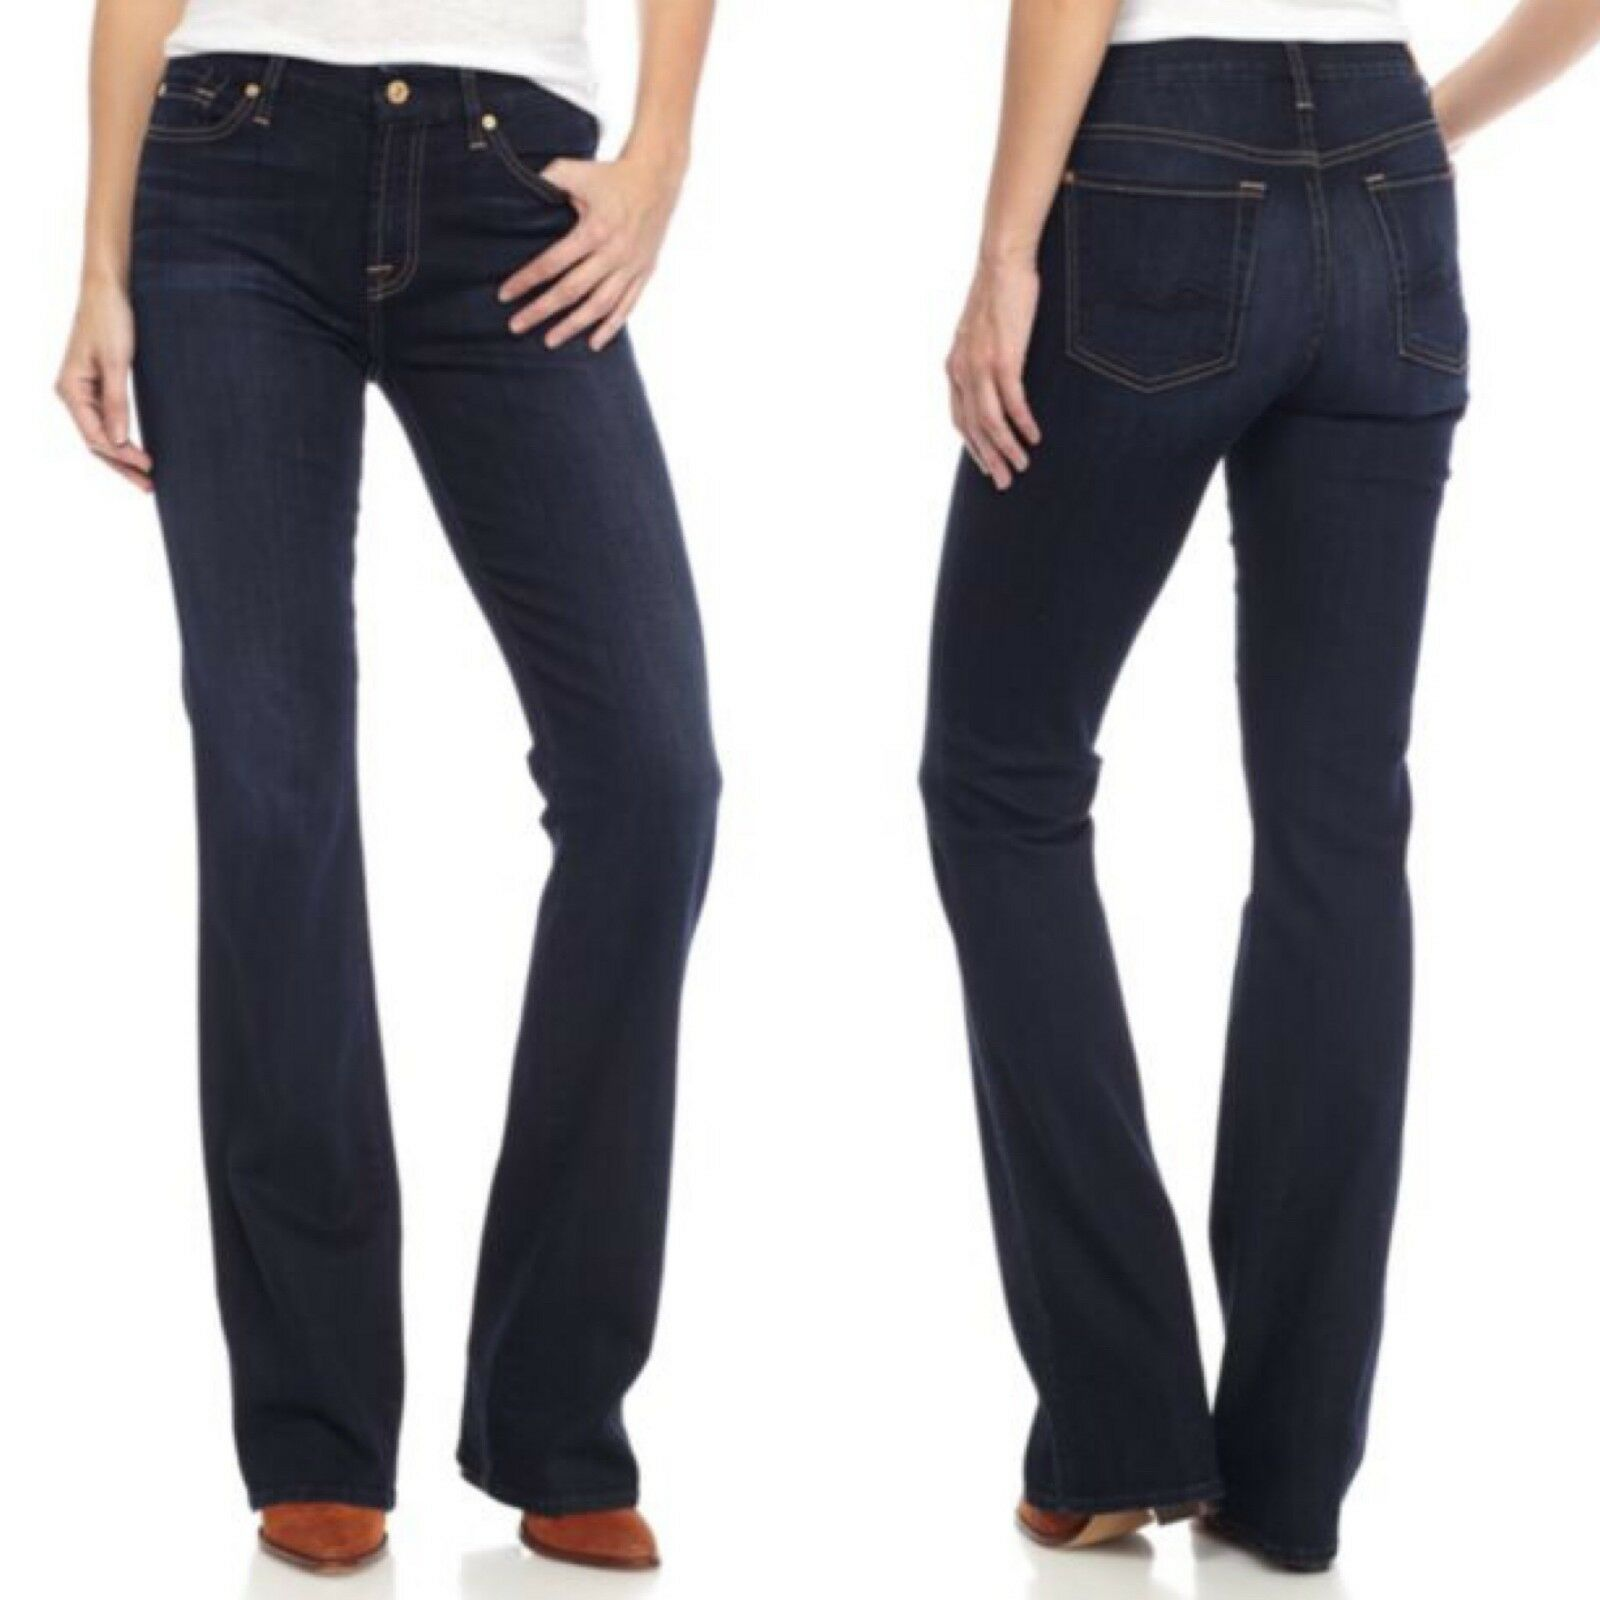 7 For All Mankind Women's Size 27 Kimmie Dark Wash Bootcut Jeans